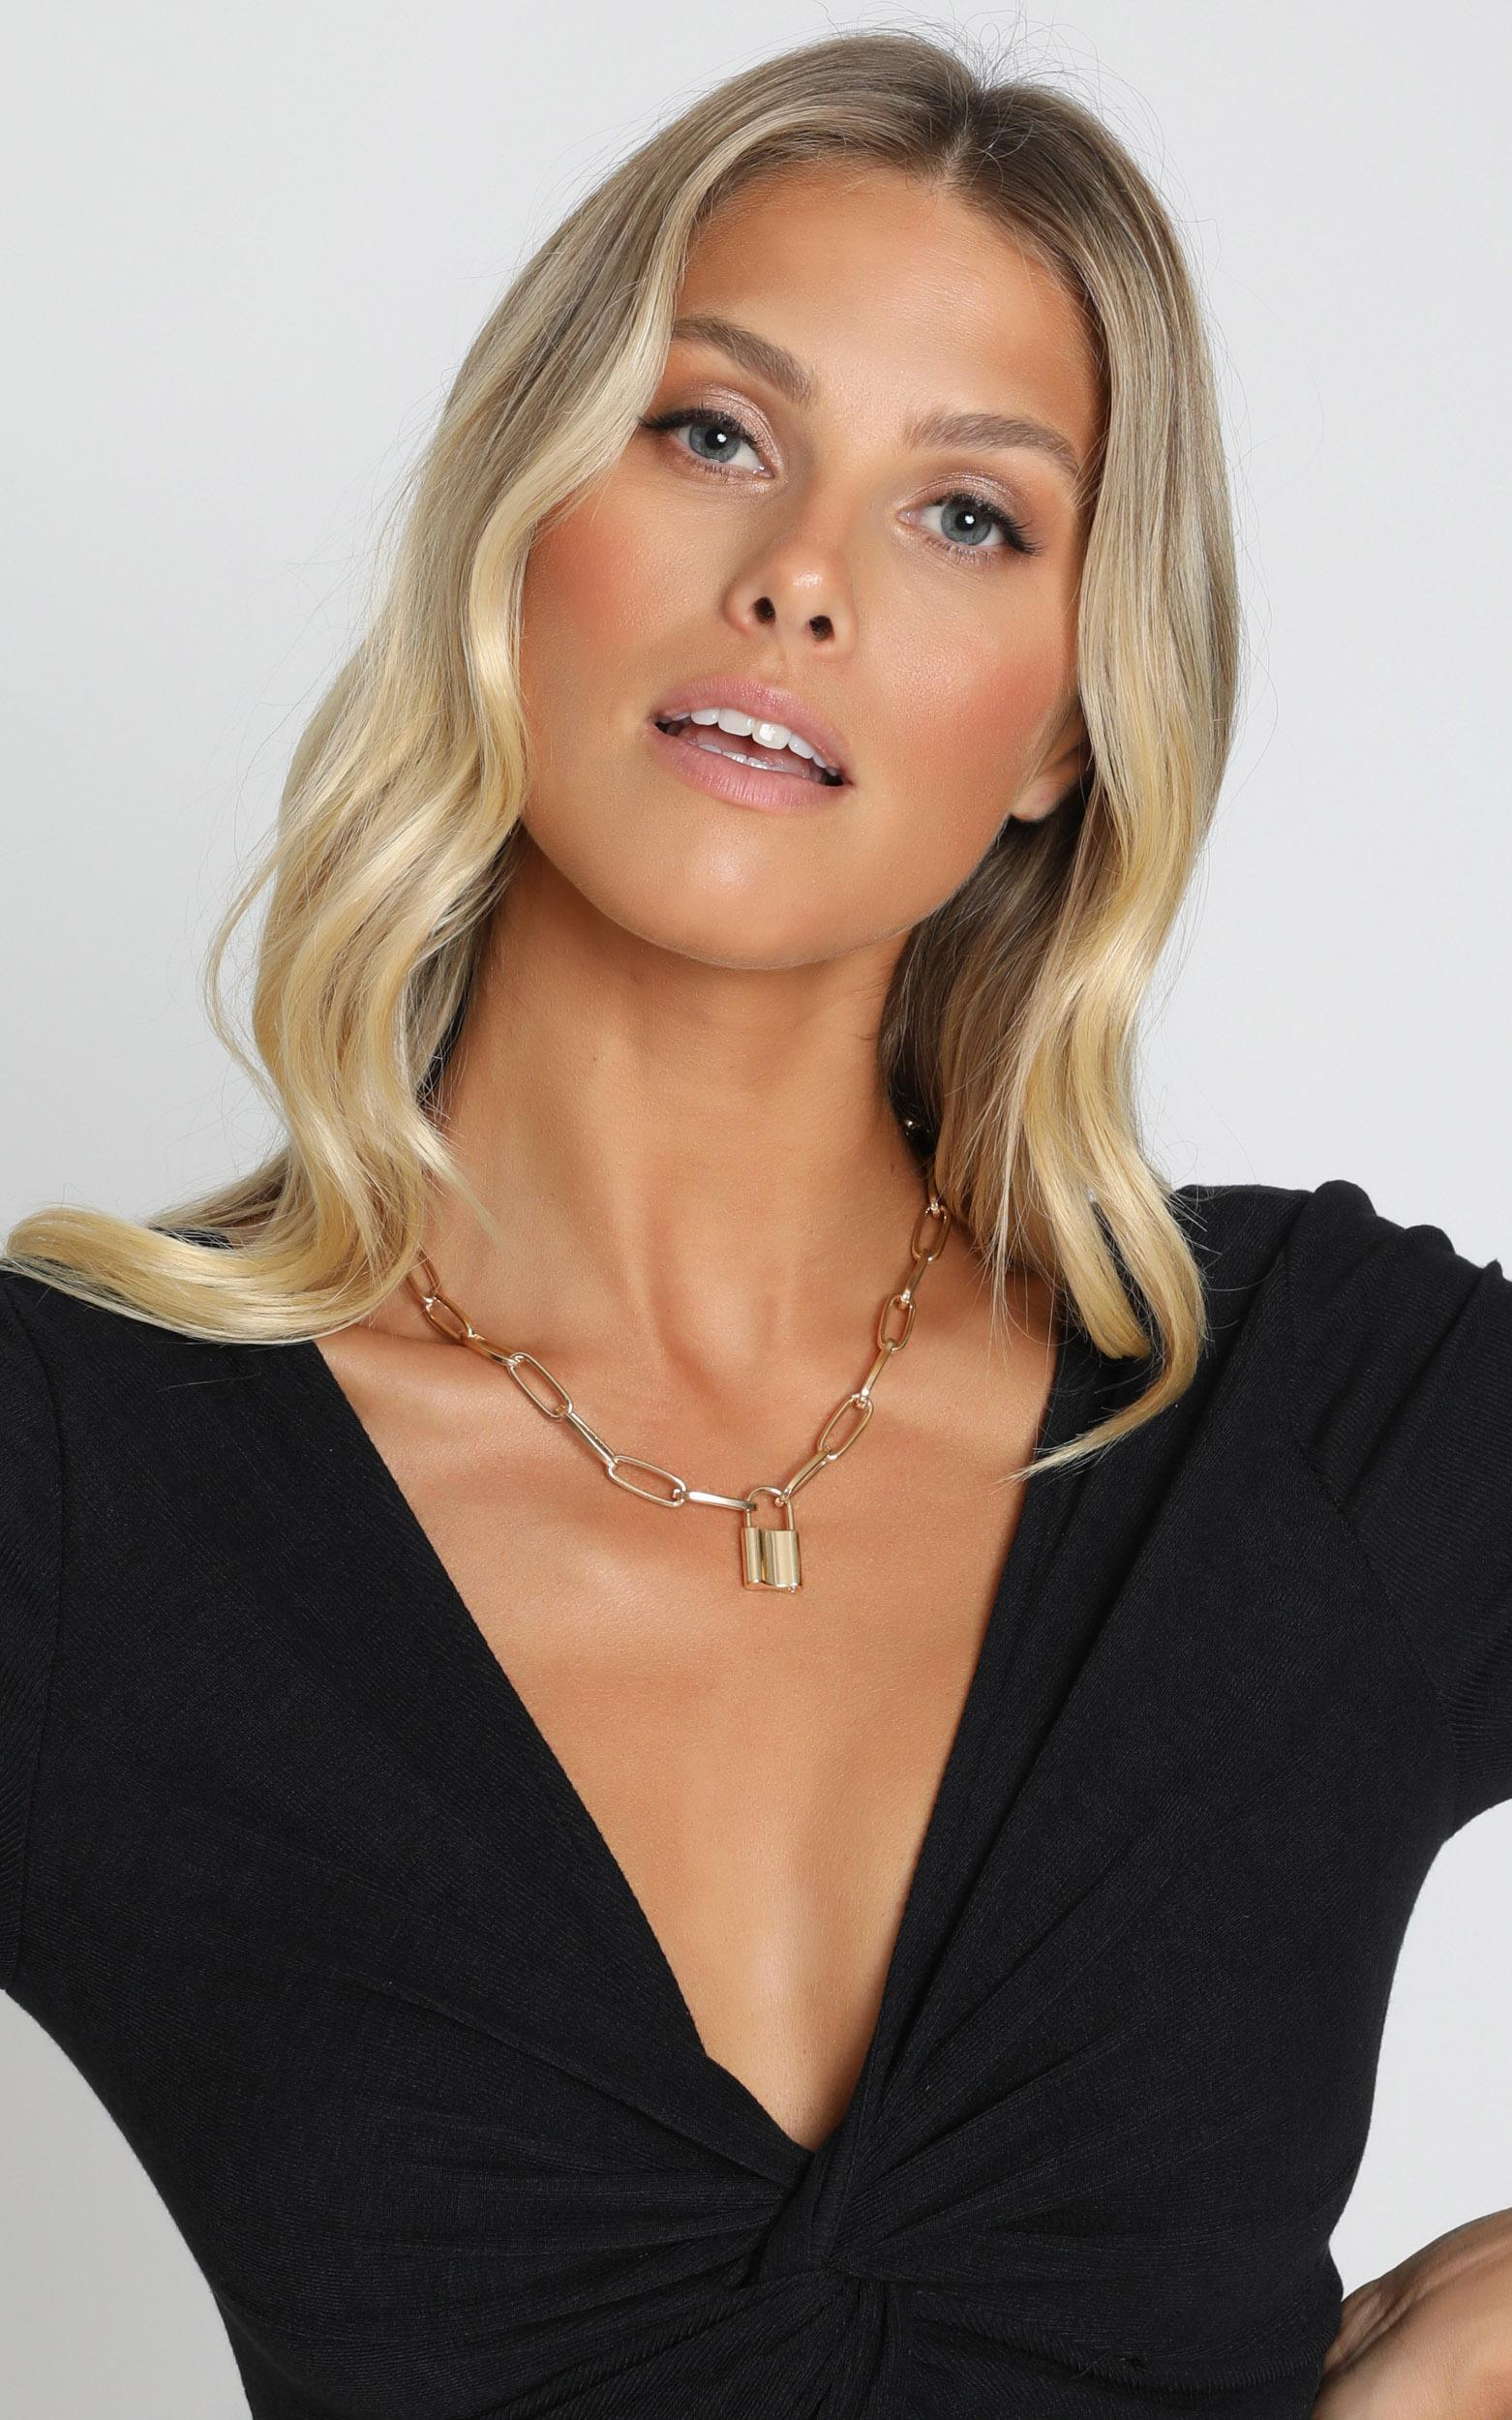 Locked Away Padlock Chain Necklace In Gold, , hi-res image number null